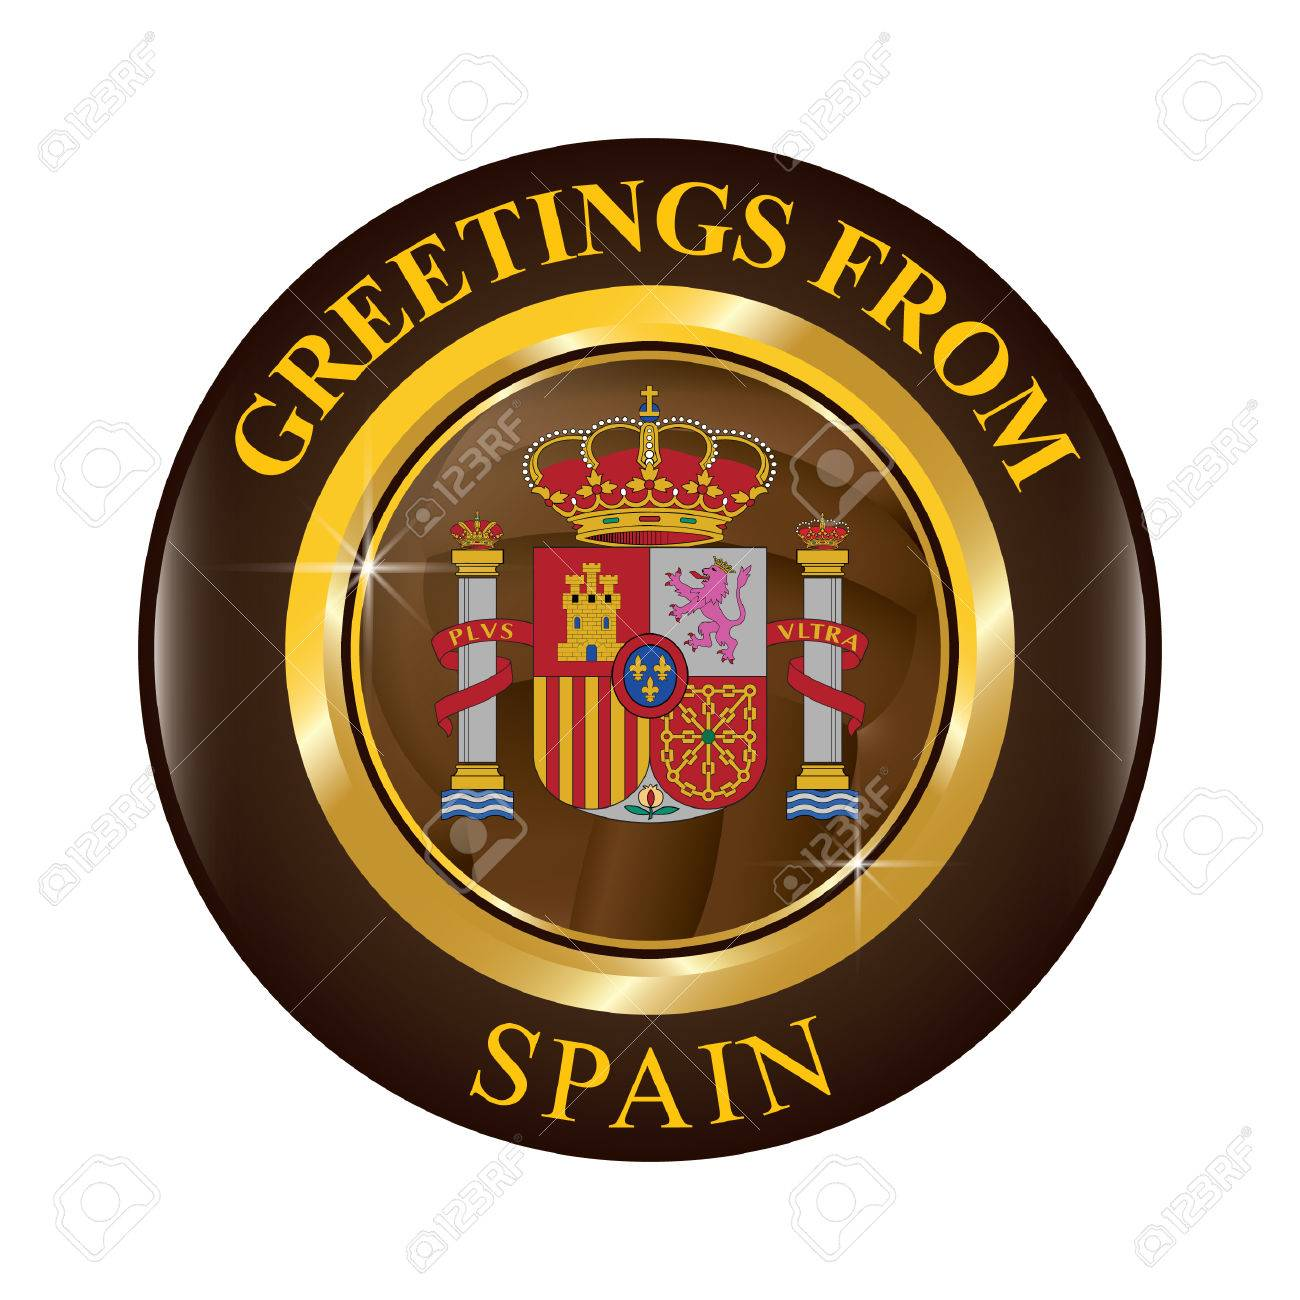 Greetings from spain royalty free cliparts vectors and stock greetings from spain stock vector 81535874 m4hsunfo